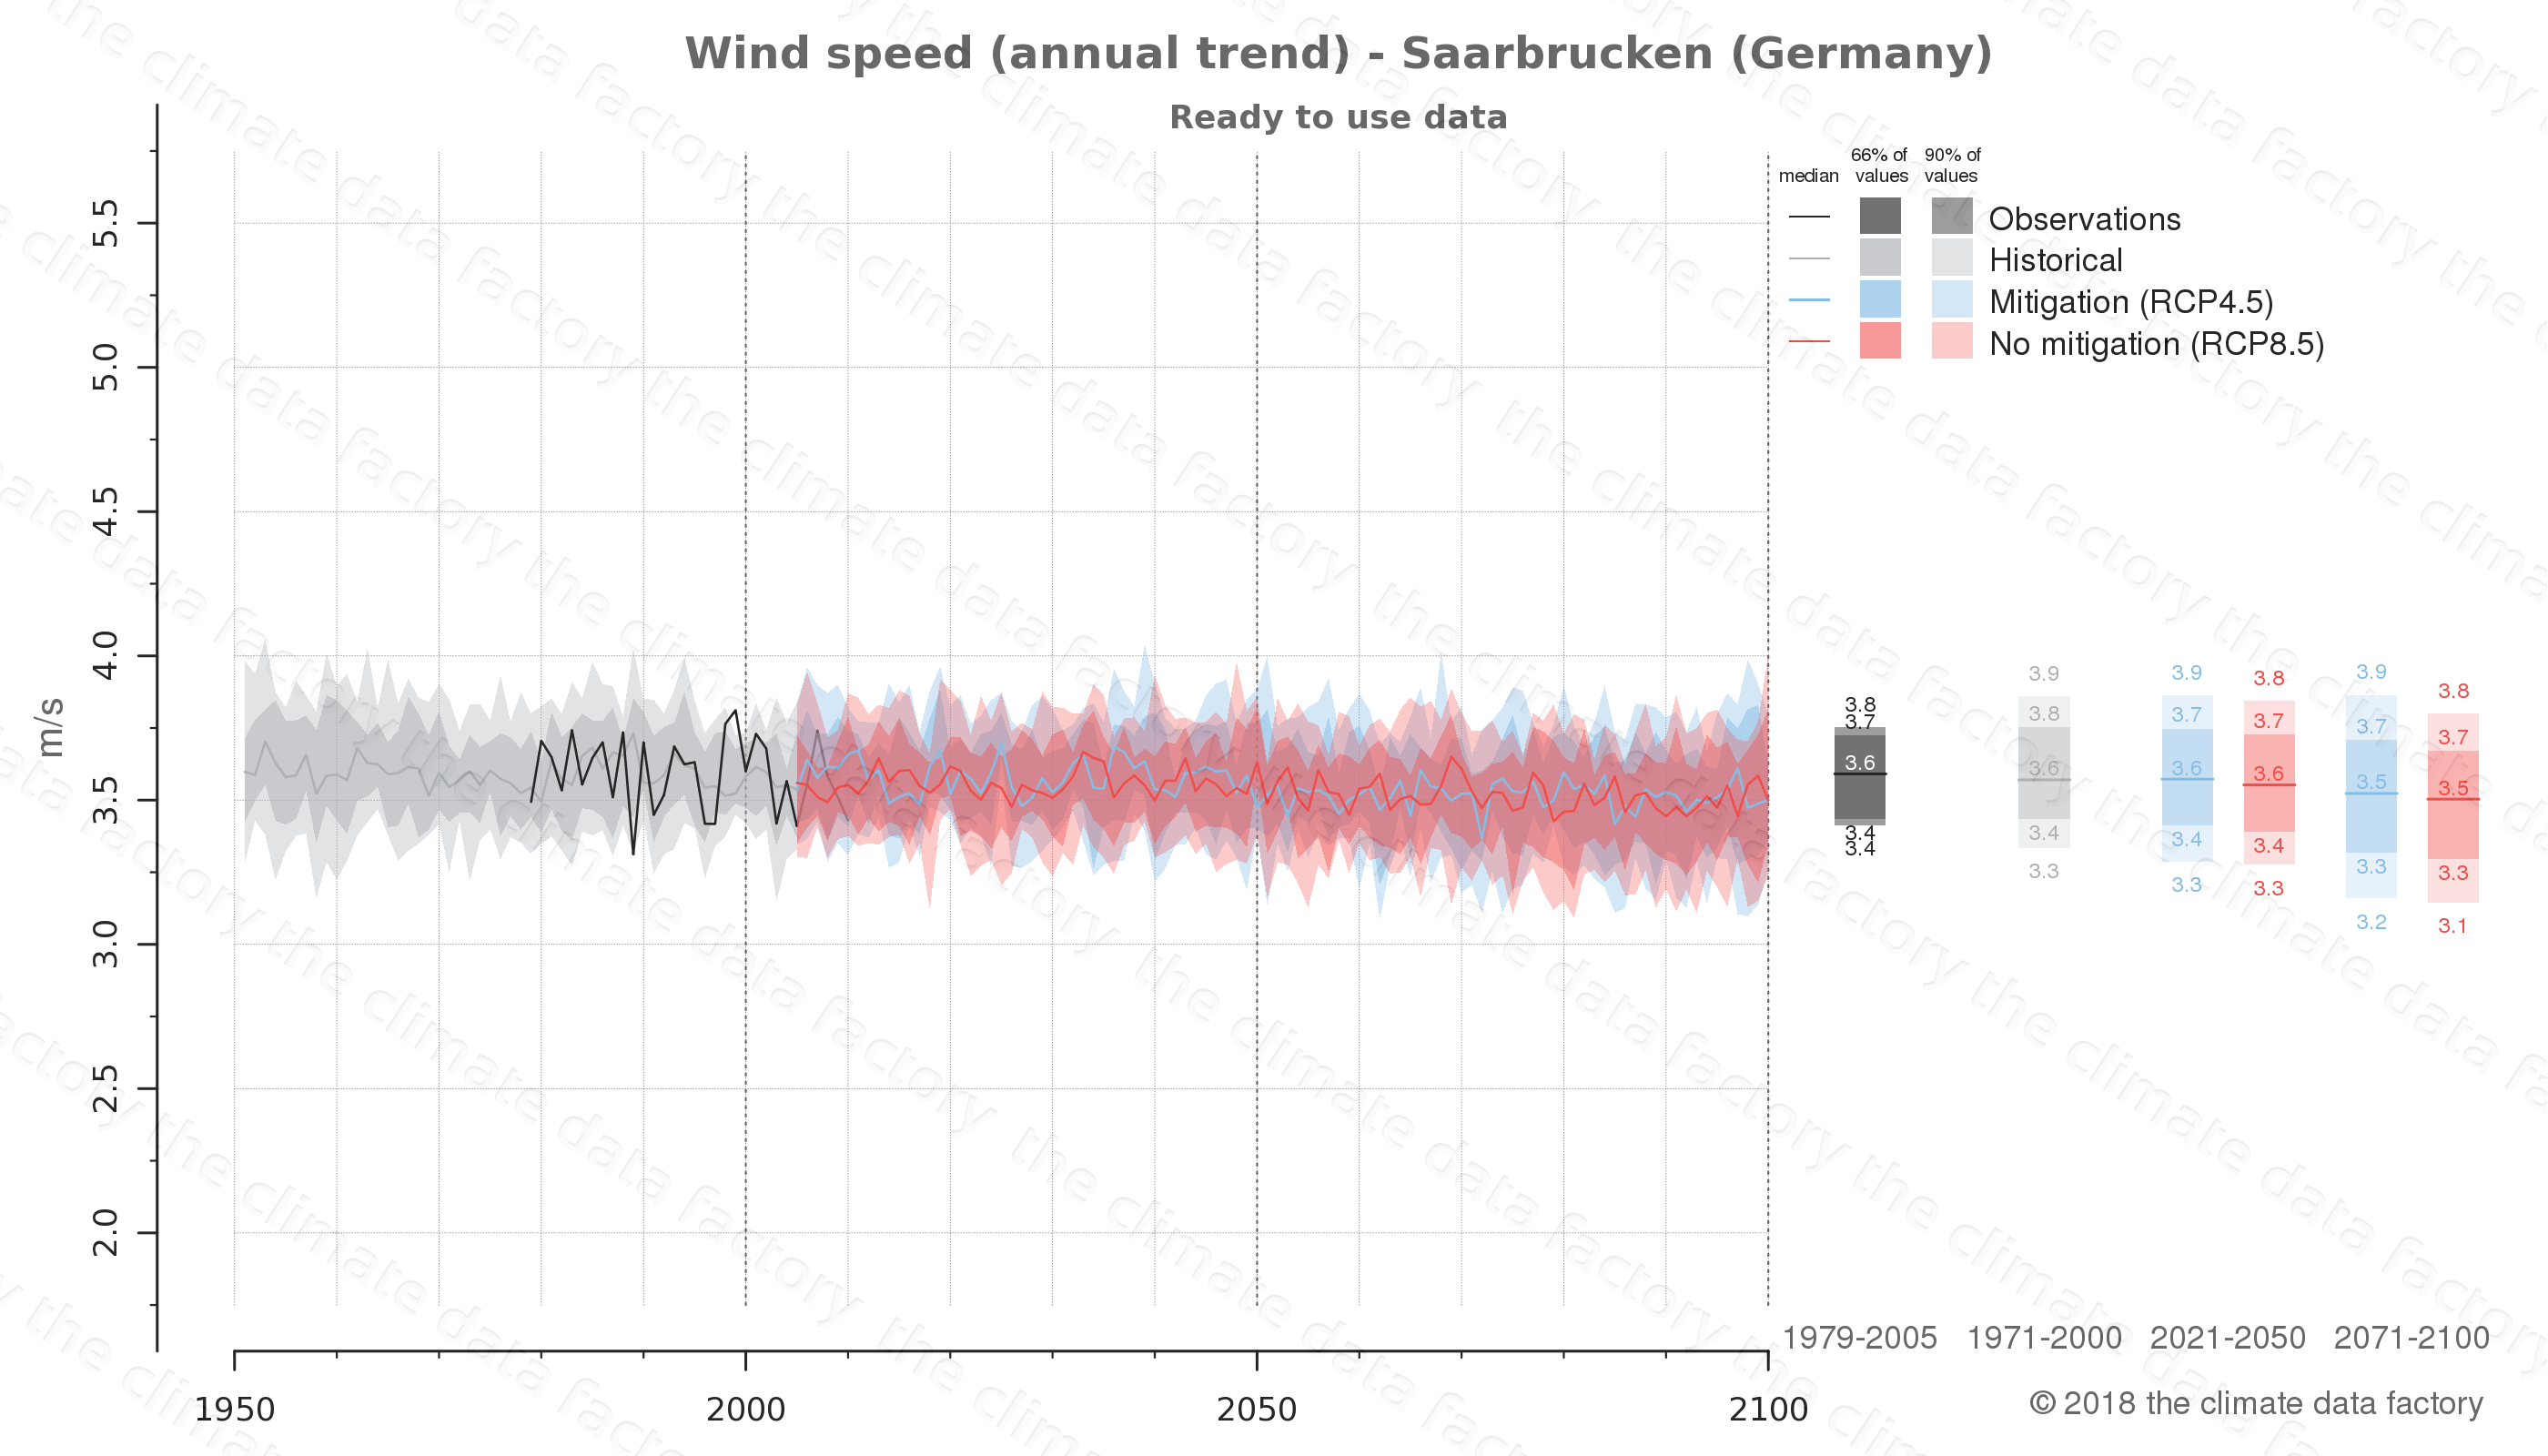 climate change data policy adaptation climate graph city data wind-speed saarbrucken germany